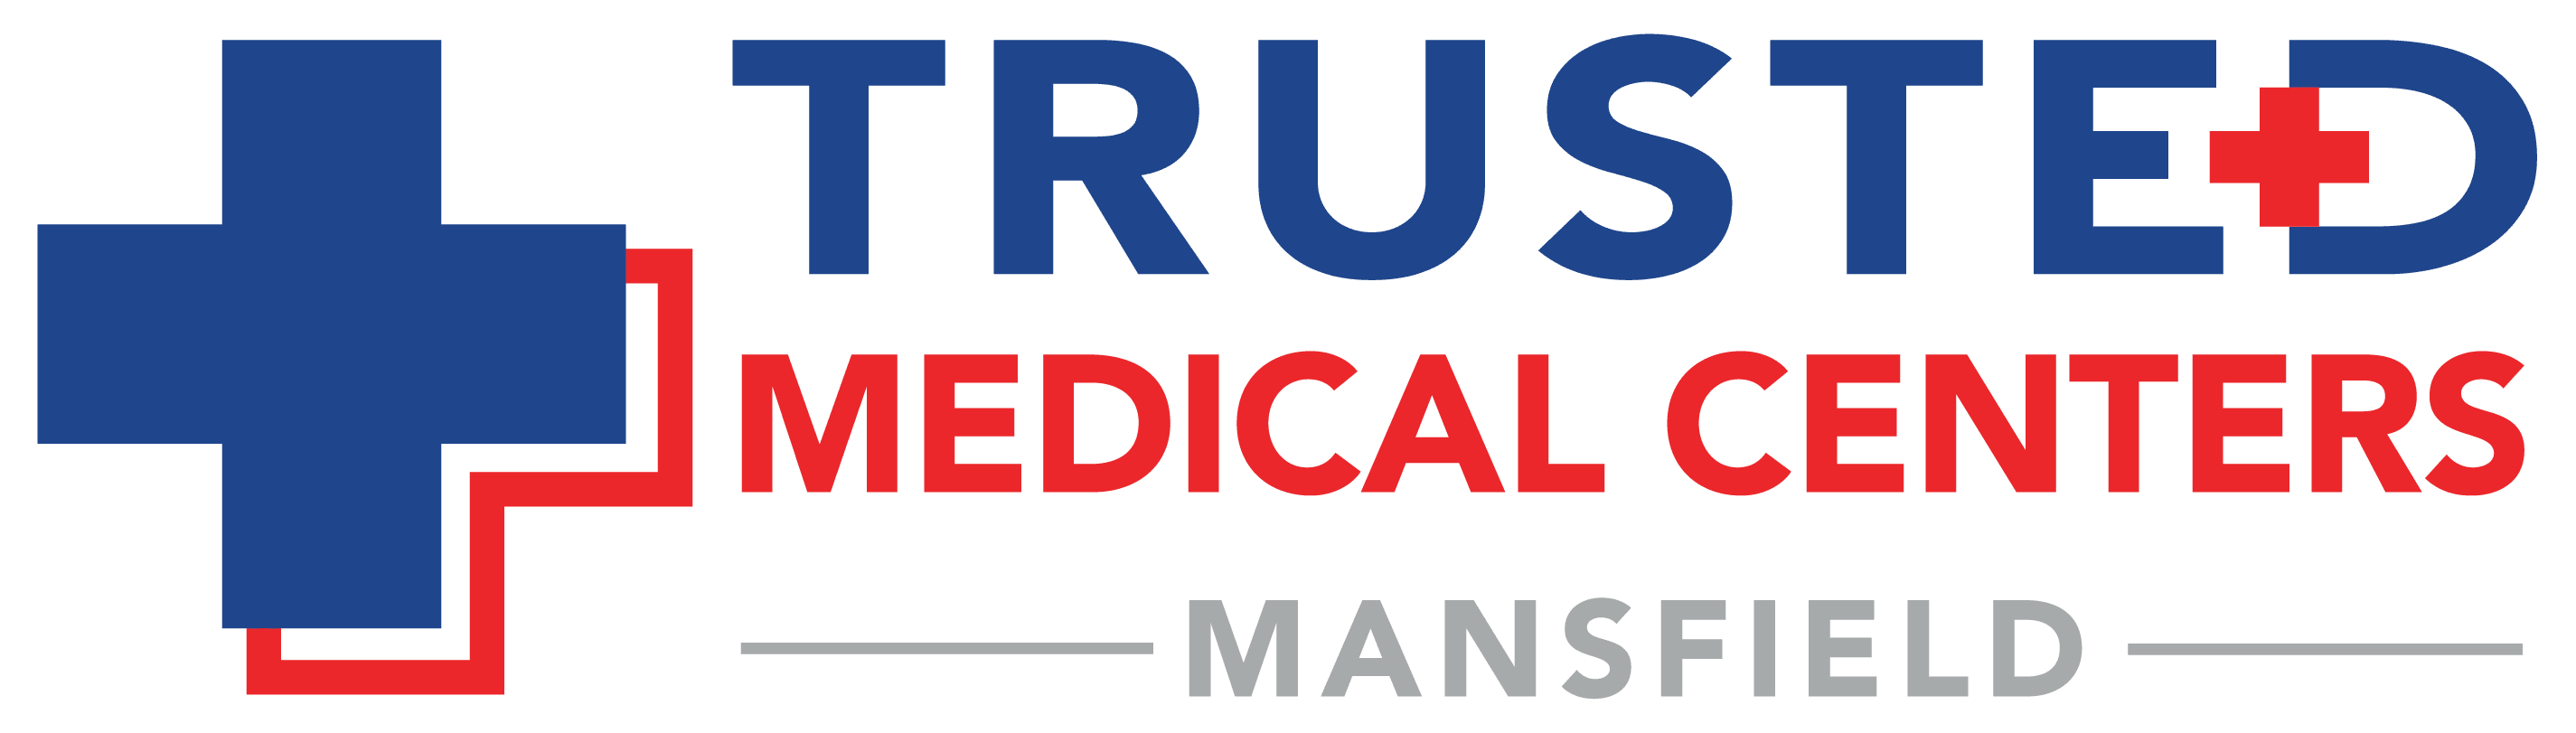 Trusted Medical Centers - Mansfield: Medical Hospital